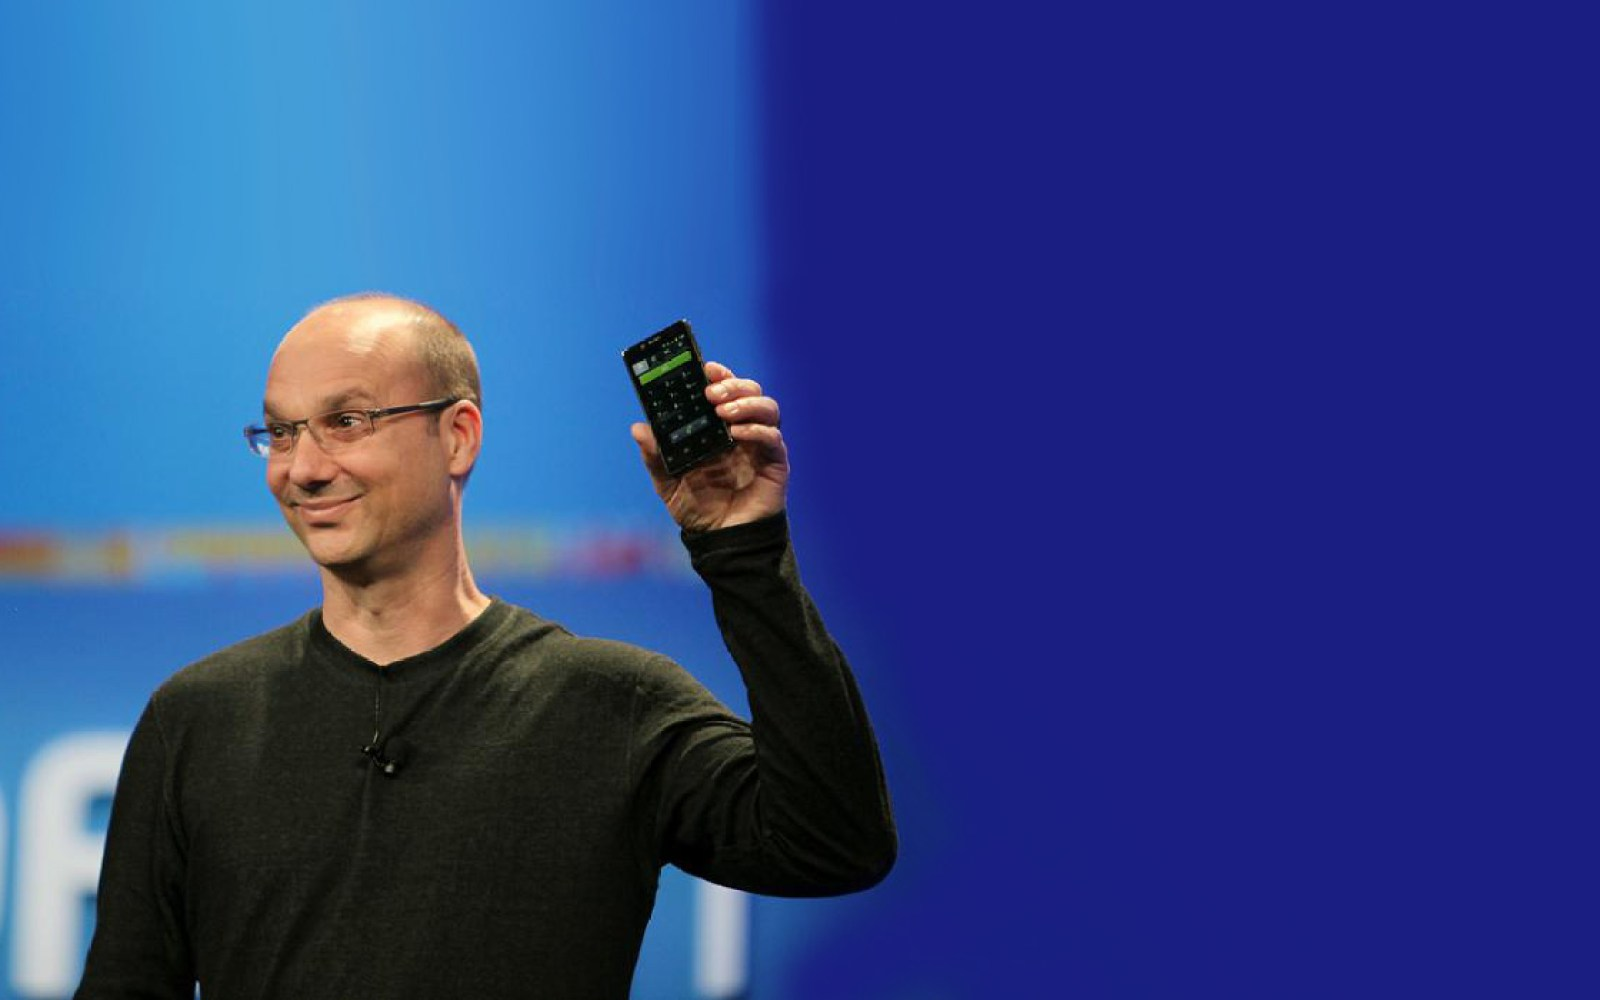 Android co-founder Andy Rubin talks new company's open AI platform, free dashcam